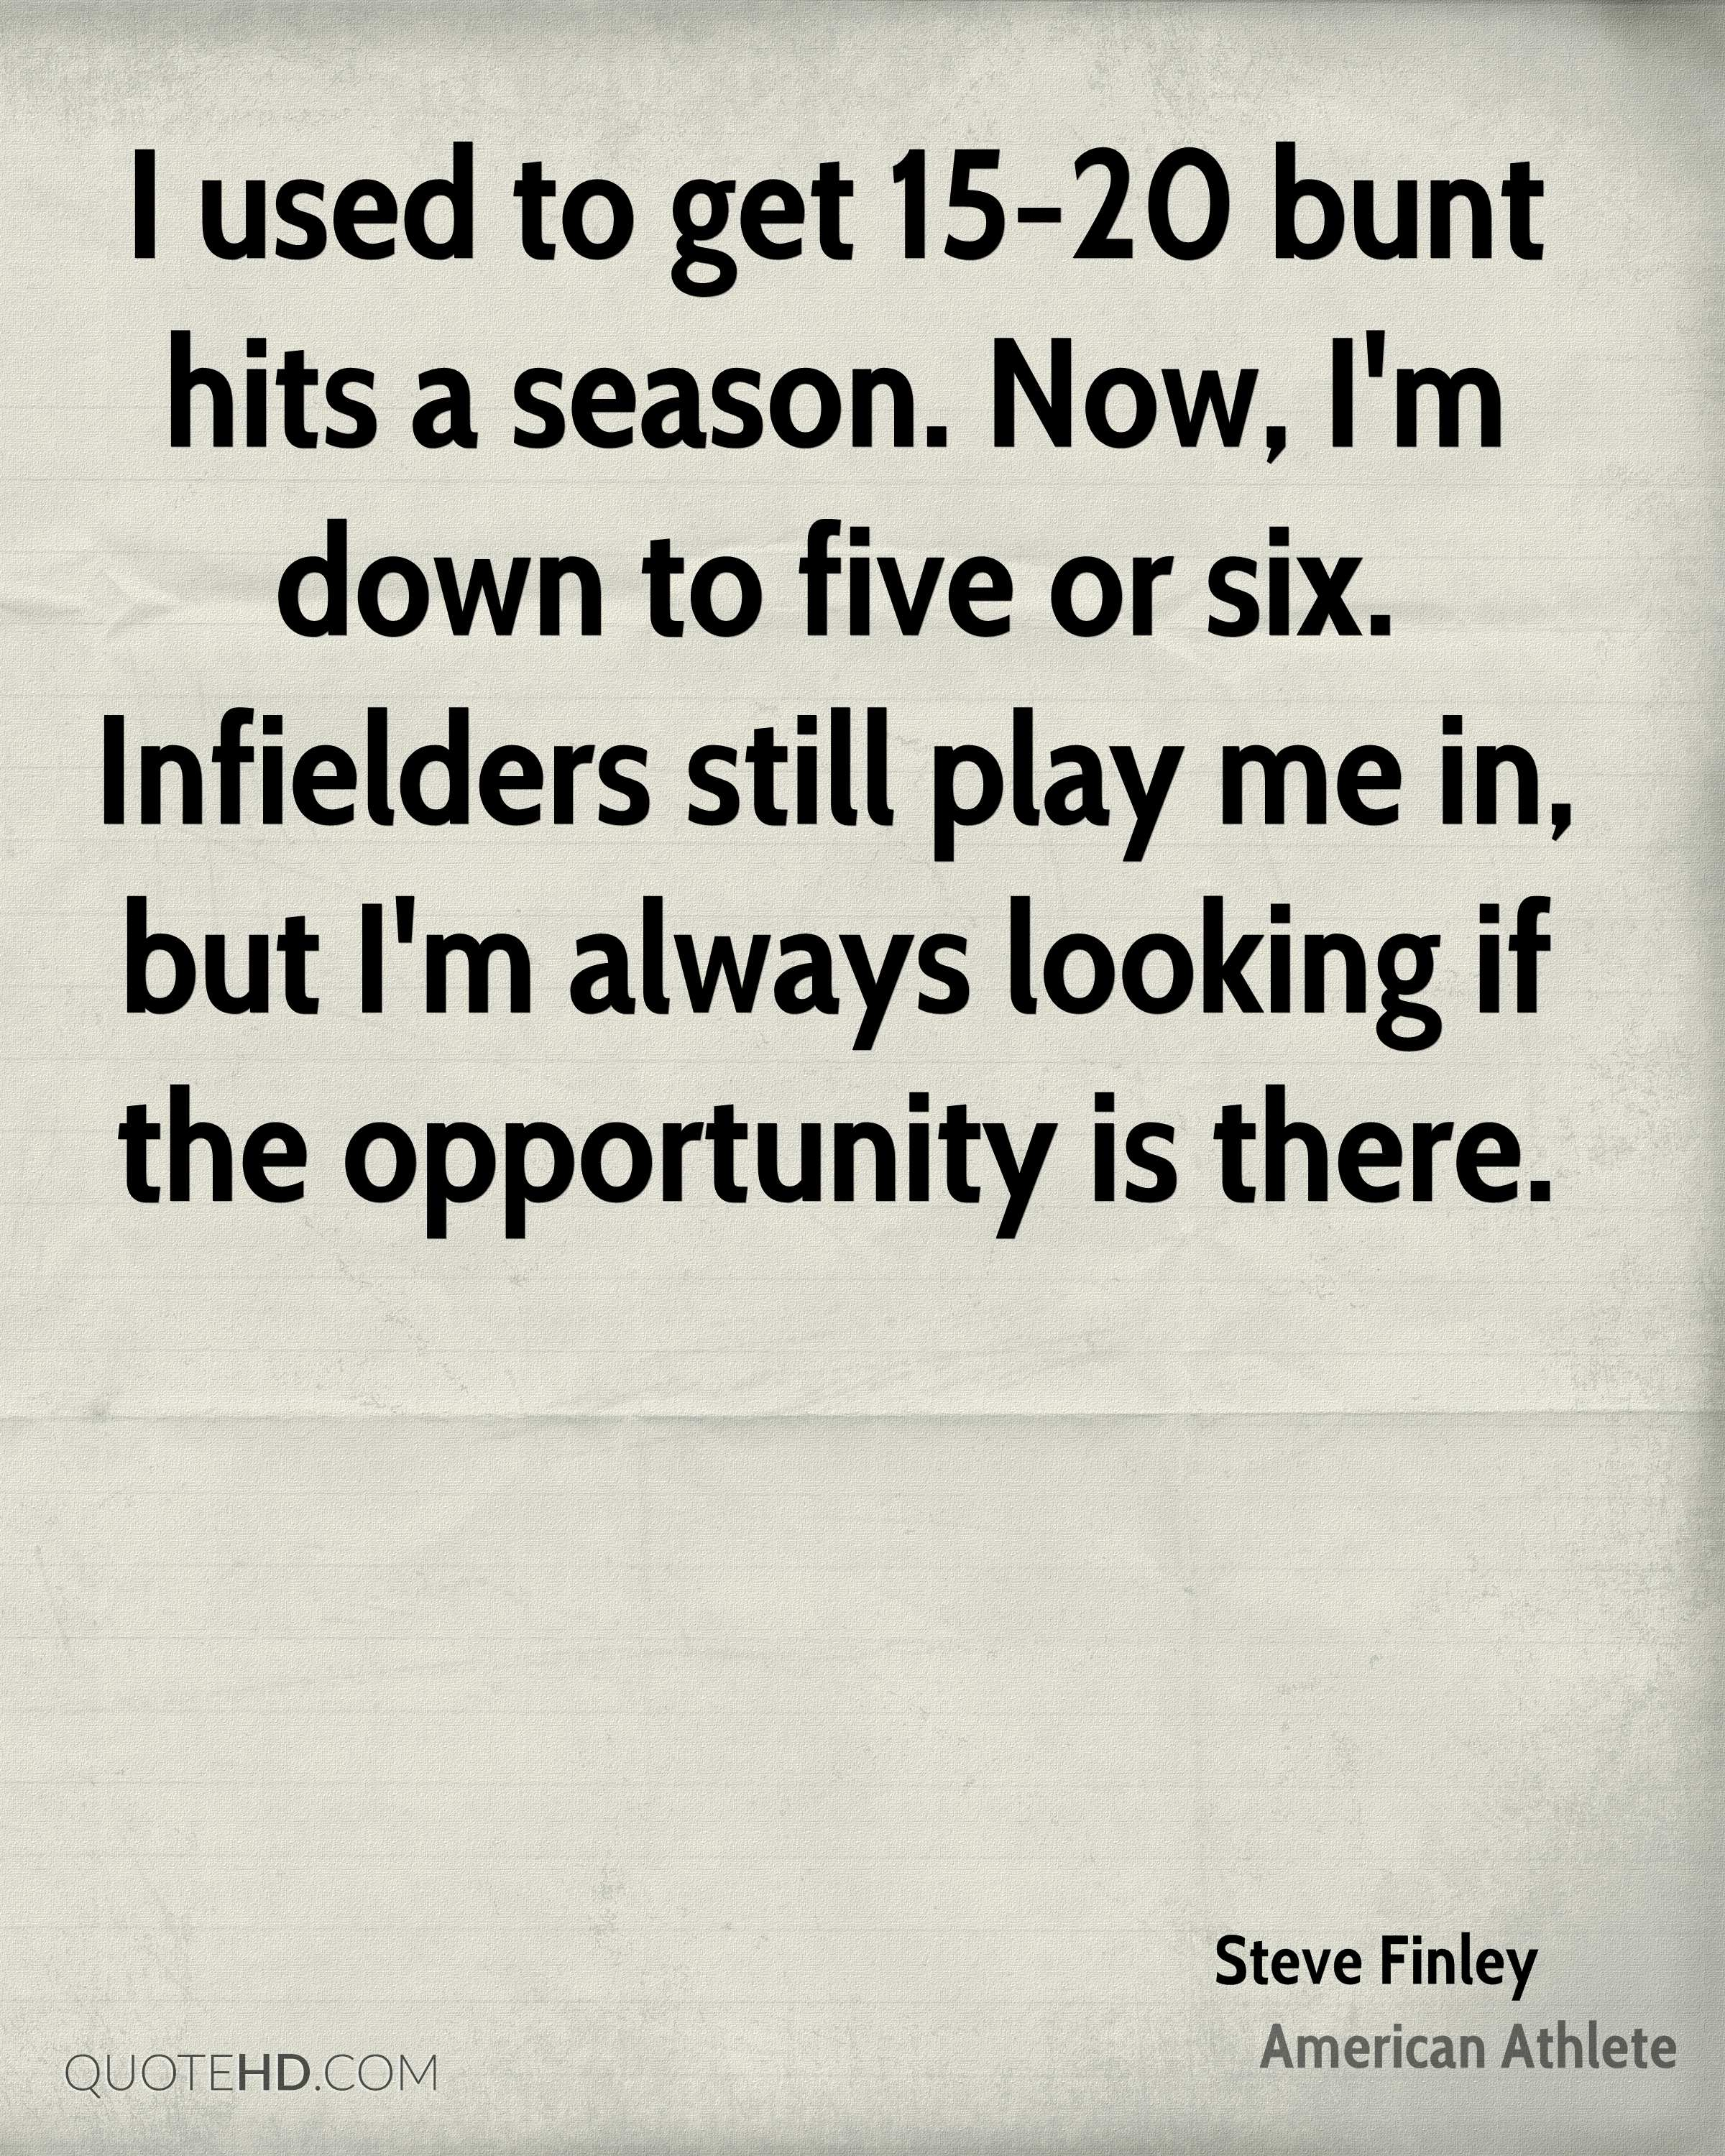 I used to get 15-20 bunt hits a season. Now, I'm down to five or six. Infielders still play me in, but I'm always looking if the opportunity is there.